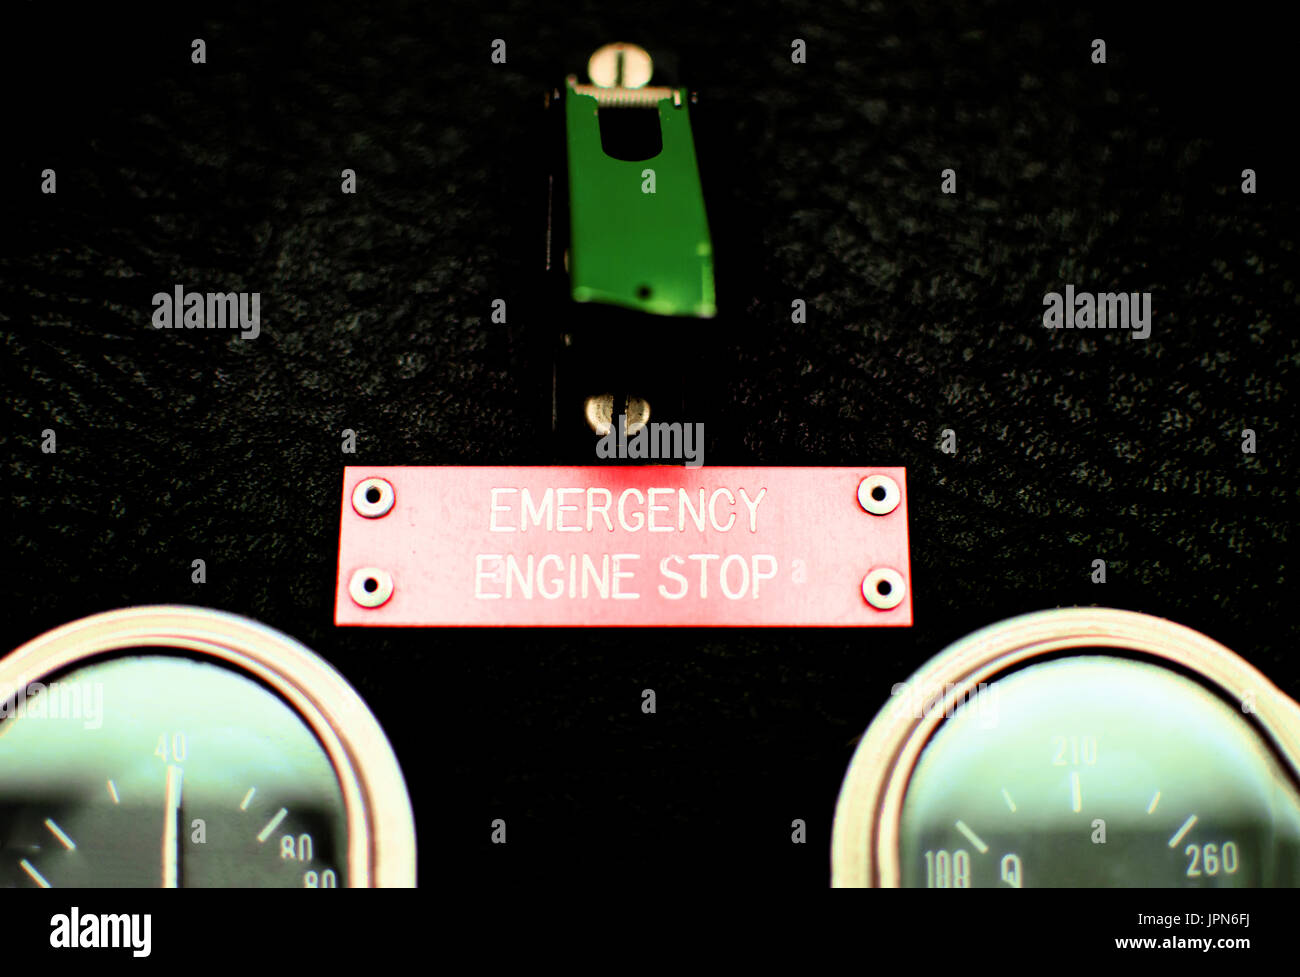 An old emergency engine stop switch with a green cover and guages. - Stock Image